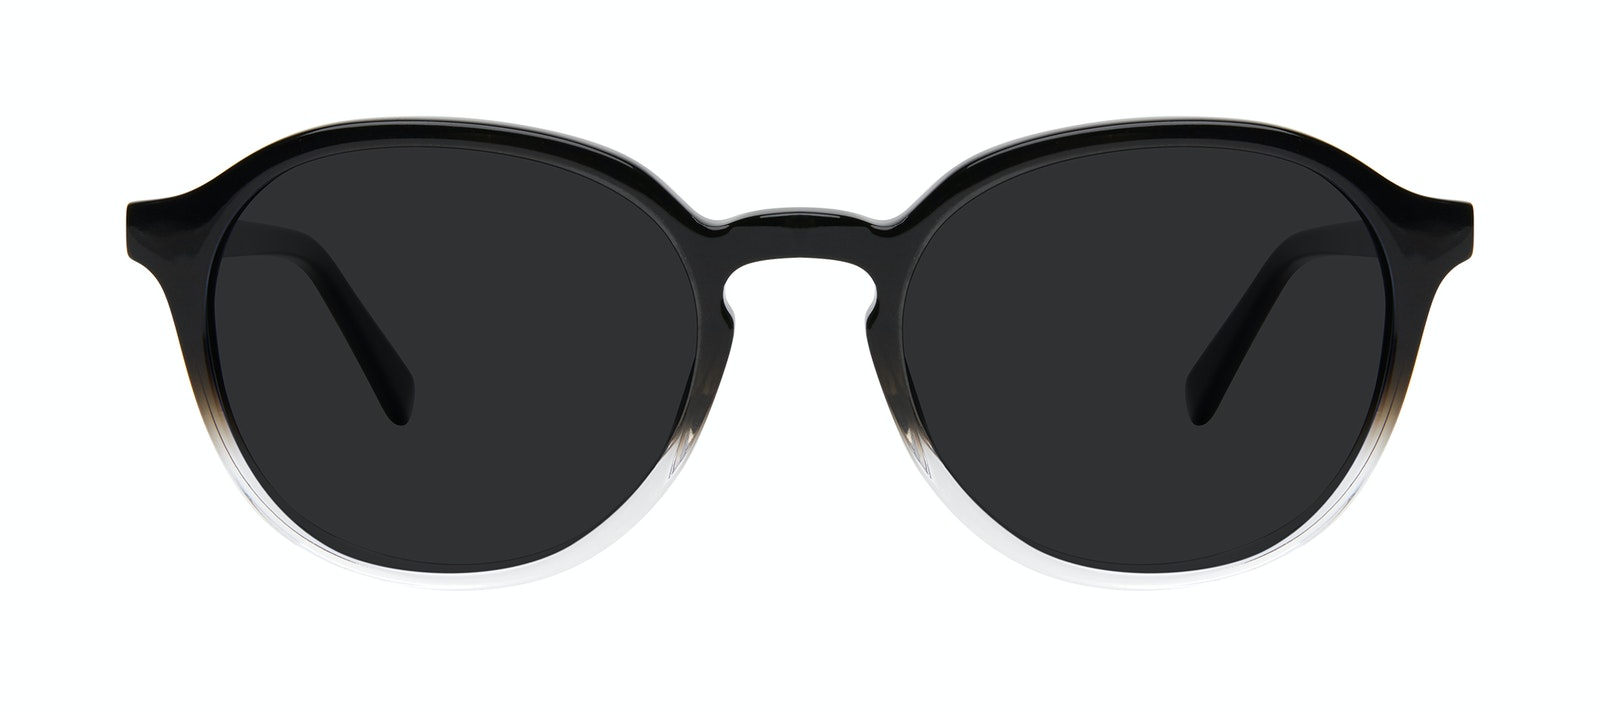 Affordable Fashion Glasses Round Sunglasses Men Ansel Onyx Clear Front